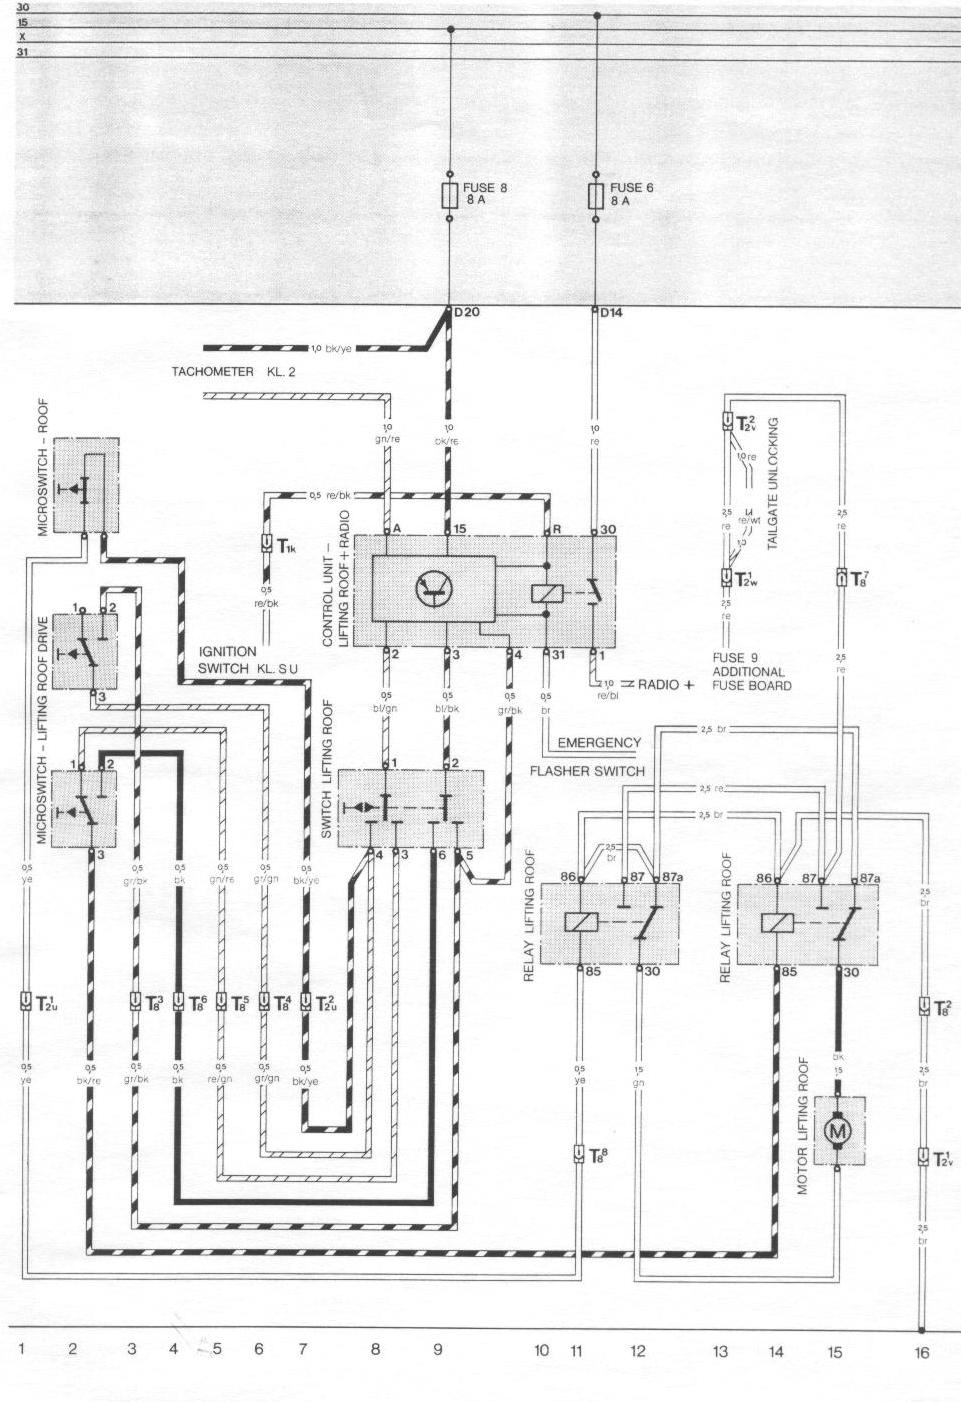 hight resolution of pelican parts porsche 924 944 electrical diagrams rh pelicanparts com porsche 924 wiring schematic porsche 993